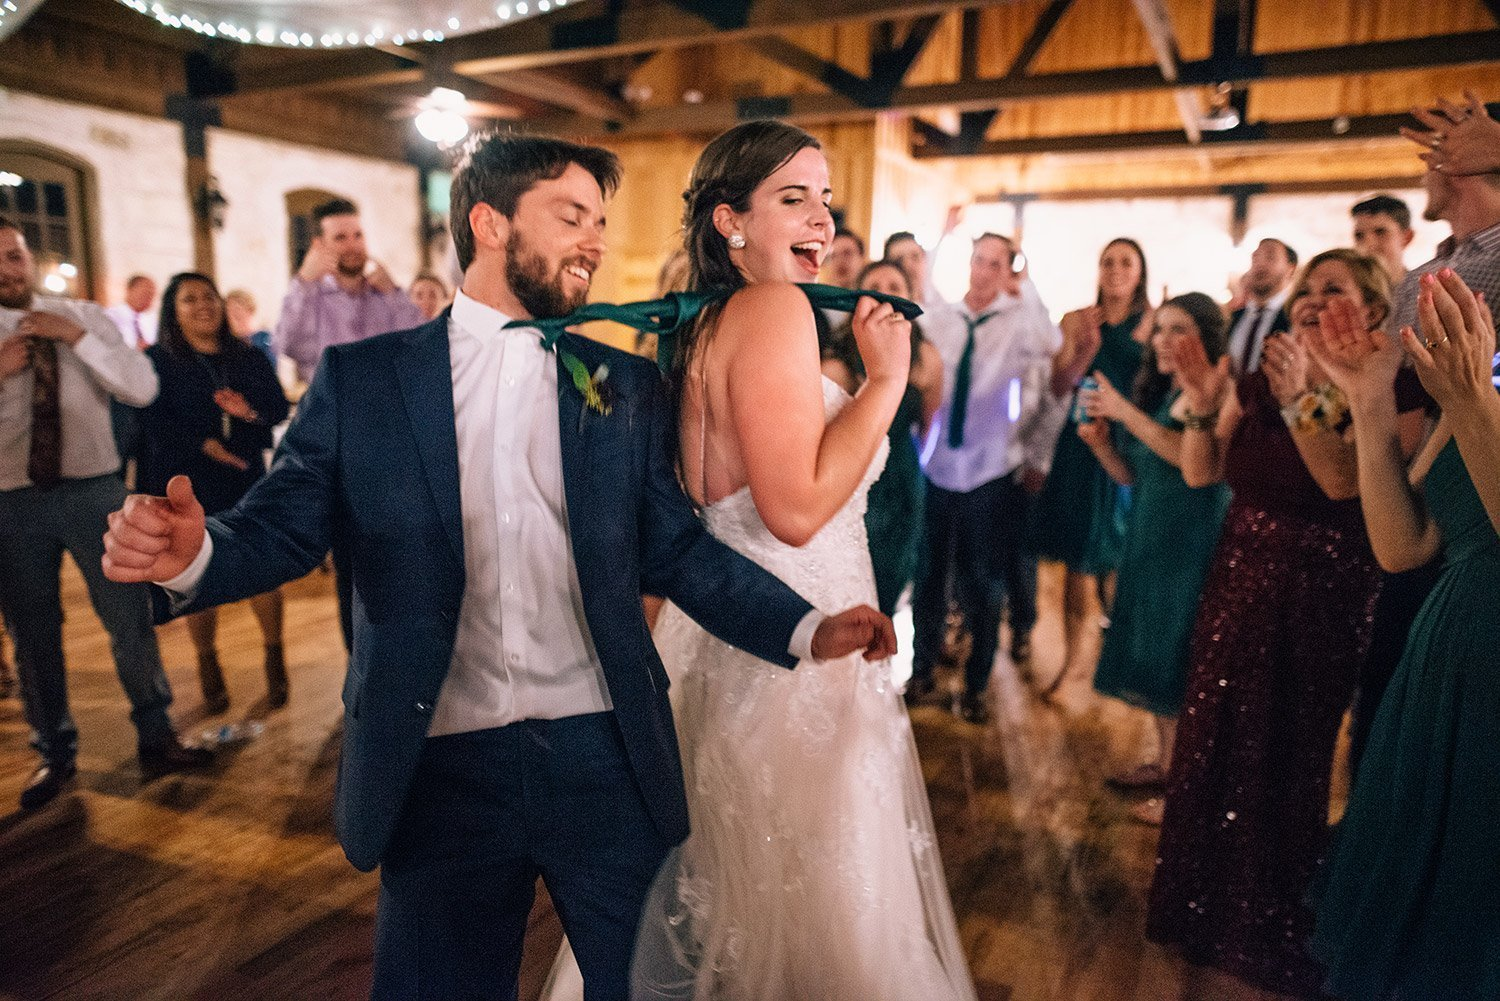 bride leads groom around the dance floor by his tie